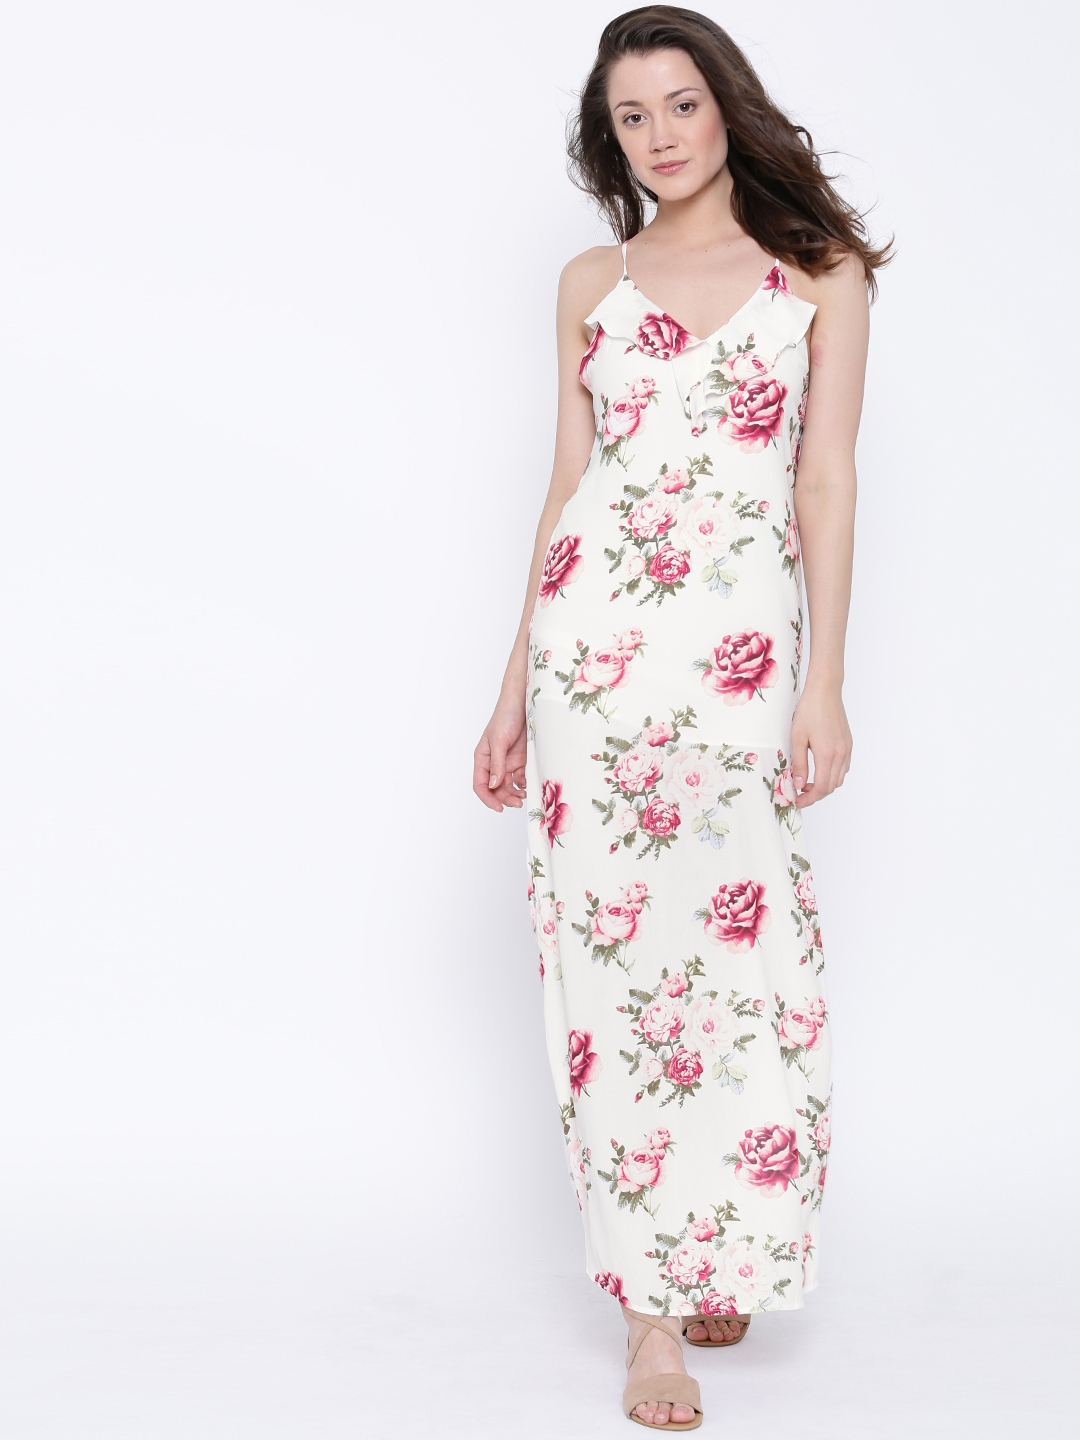 3bf7d134a480 Buy FOREVER 21 Women White   Pink Semi Sheer Printed Maxi Dress - Dresses  for Women 1621175